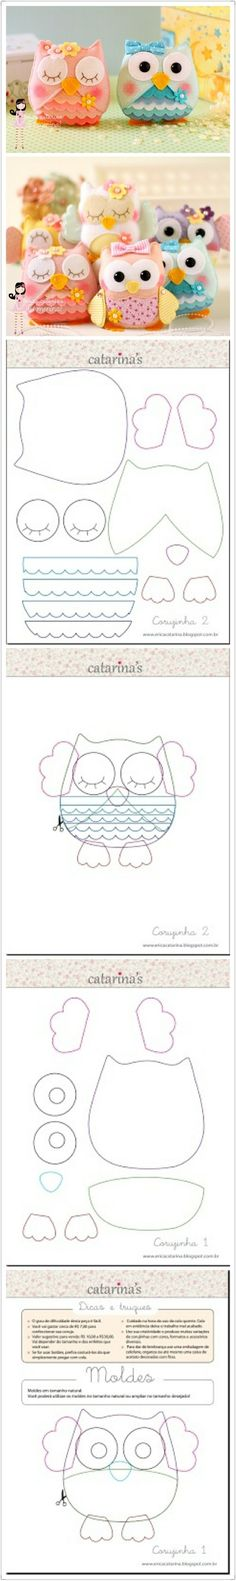 Owl template. Supposed to be a pillow toy but could also be applique for bib or quilt or hoodie